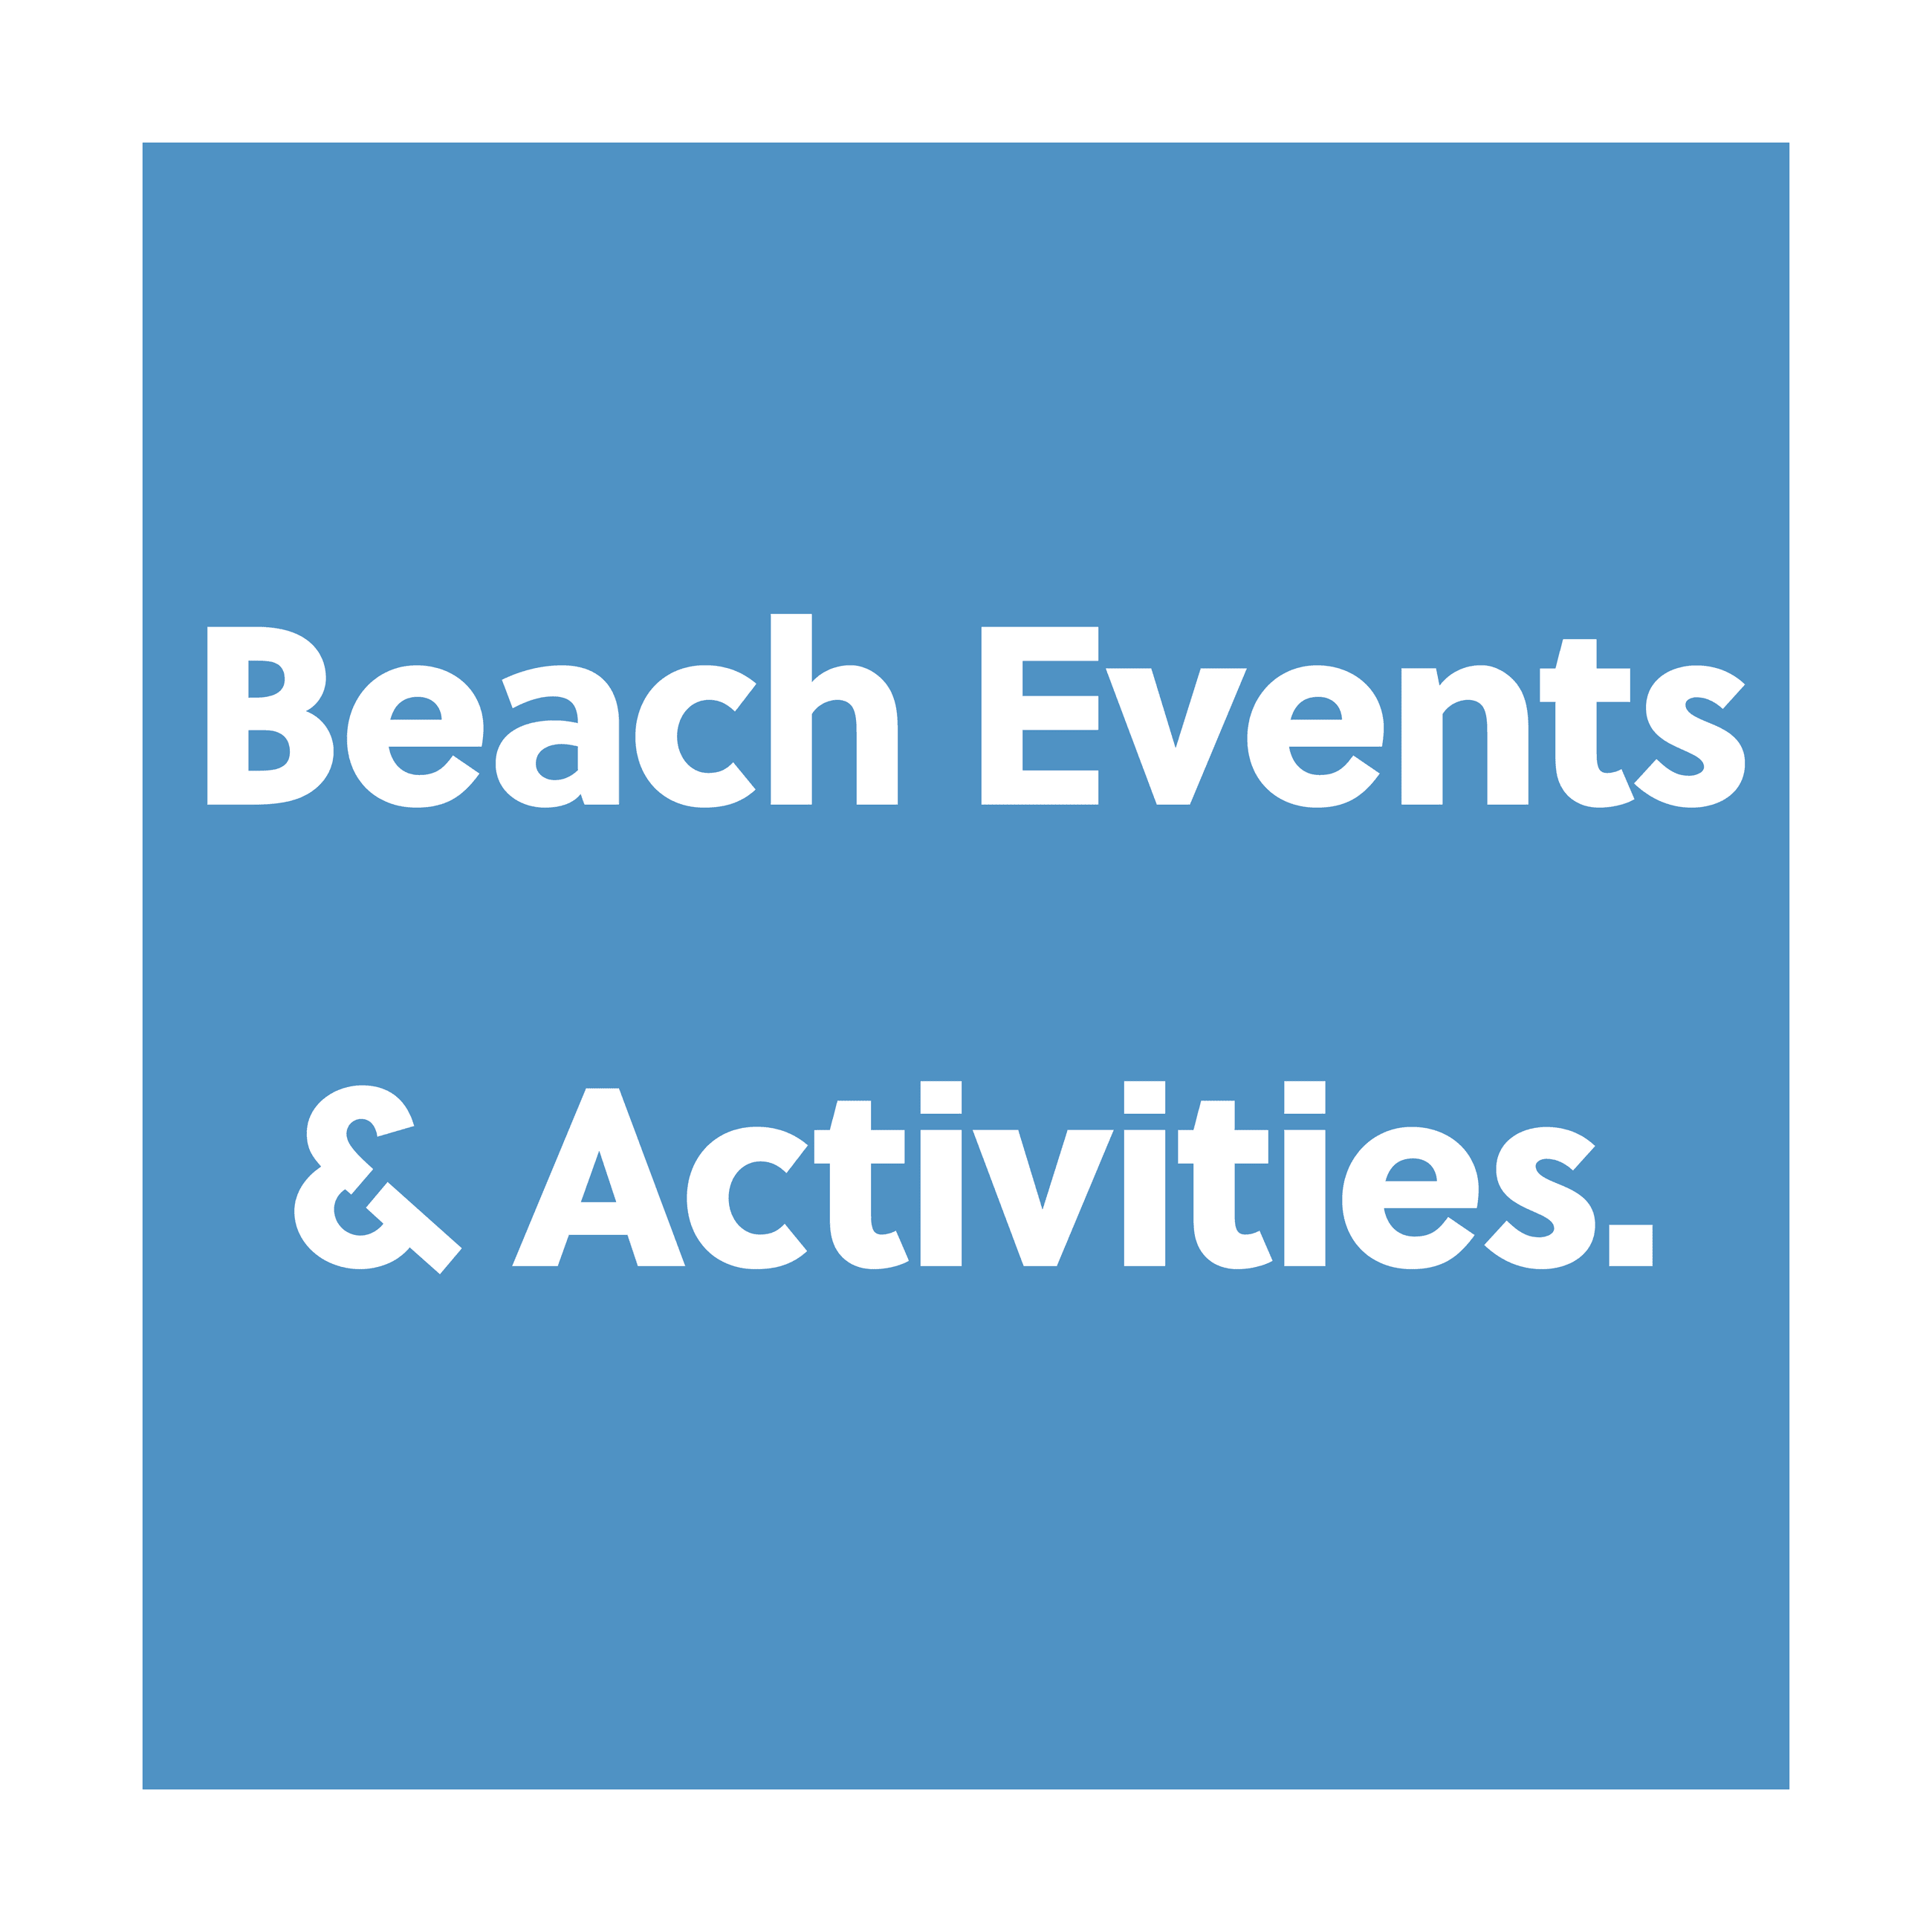 Beach events and activities